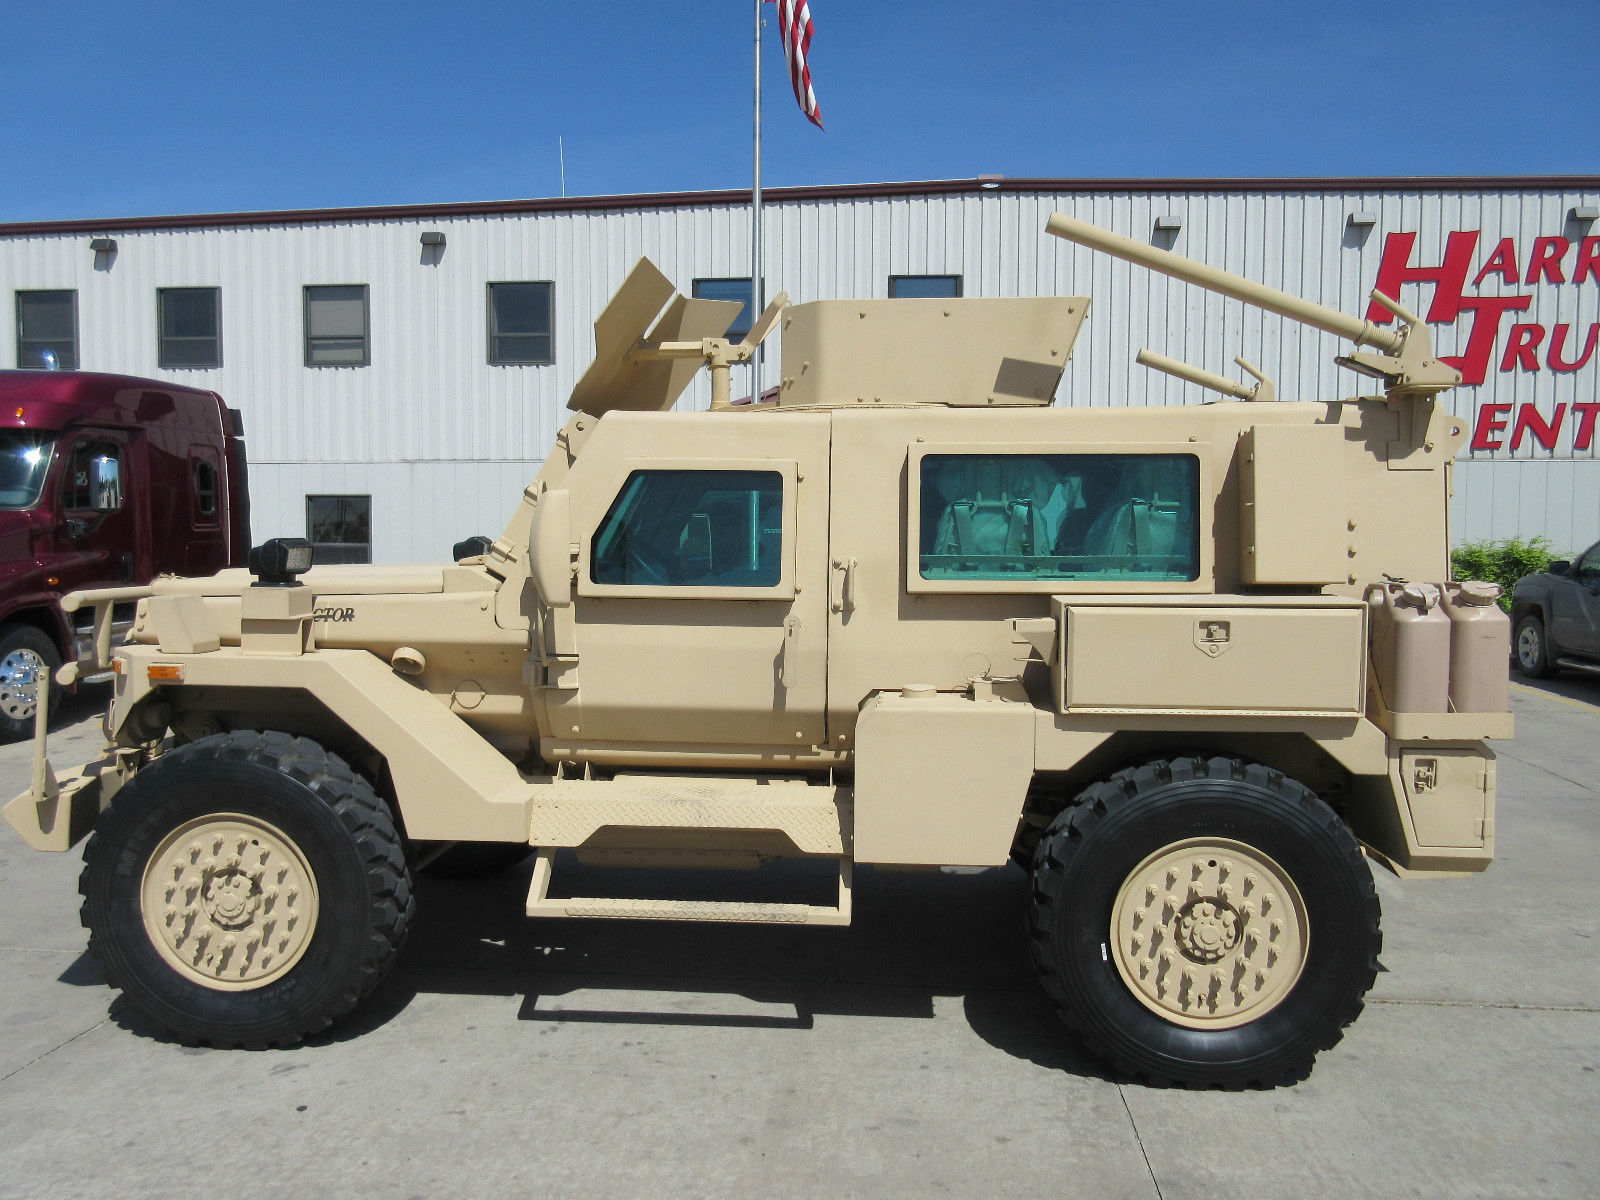 Used Cars for Sale Near Me Ebay Lovely Armored Military Vehicle Used In Iron Man 3 is On Ebay Autoevolution